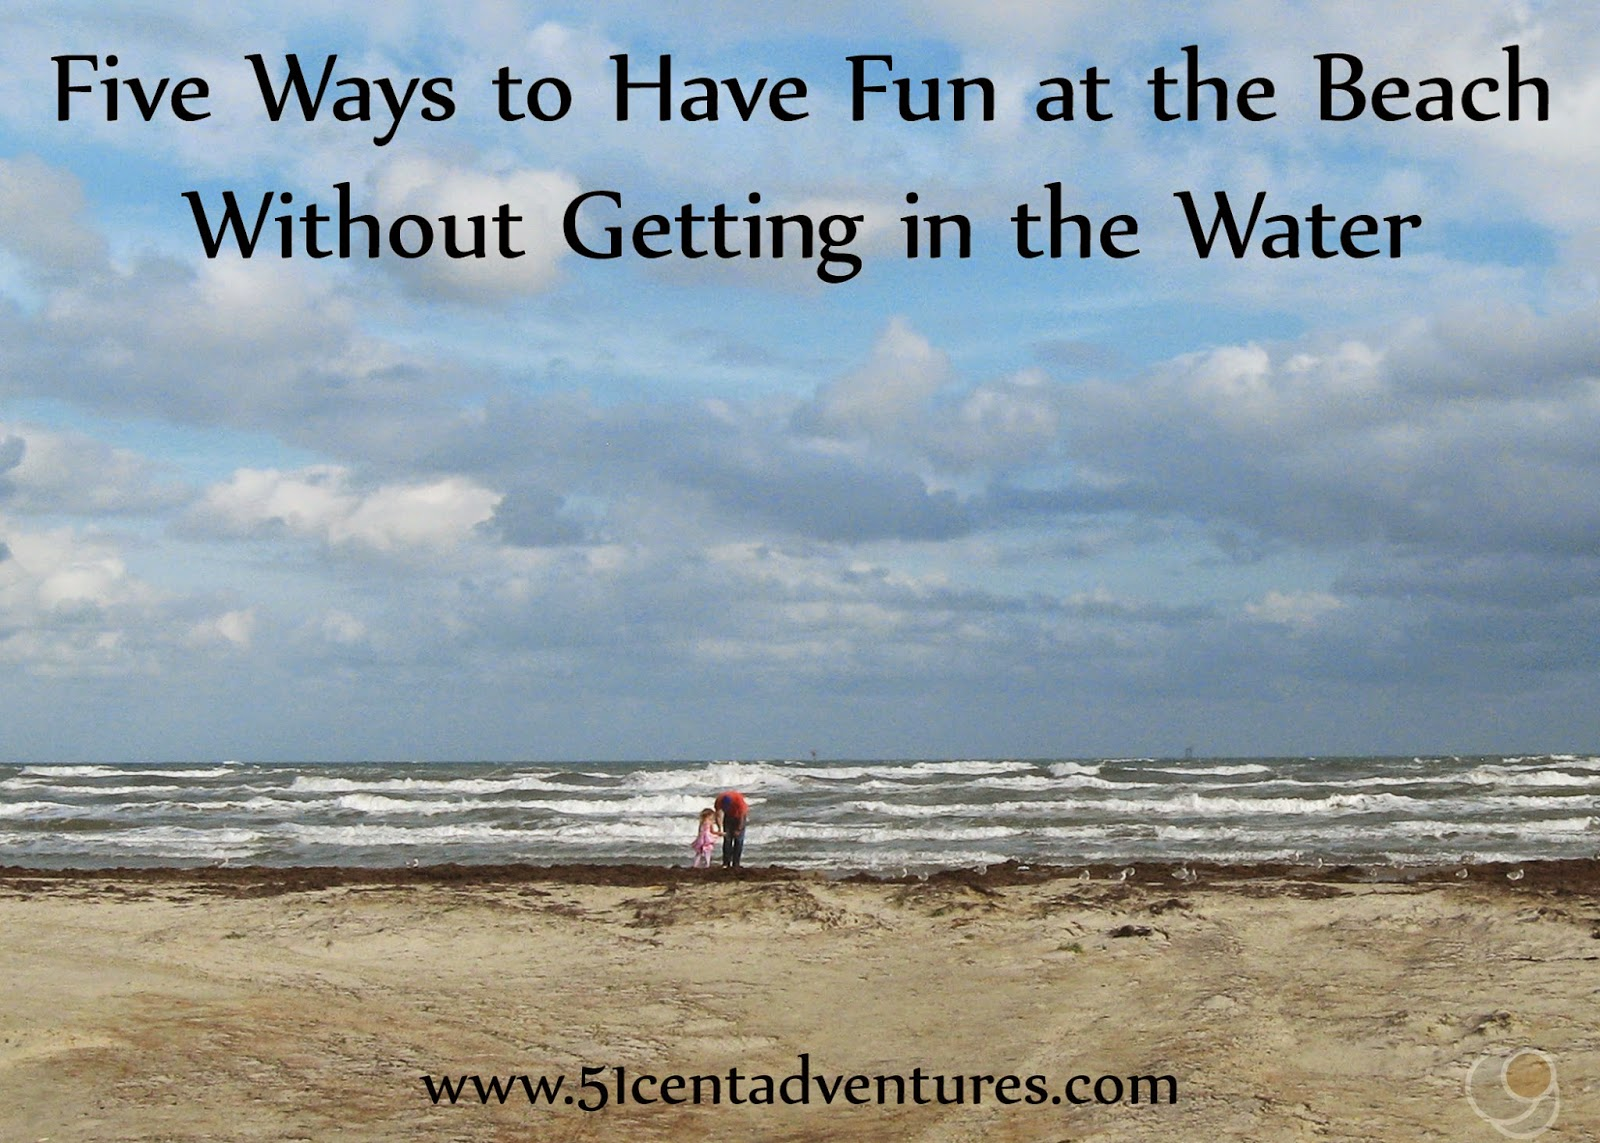 How to Have Fun at the Beach